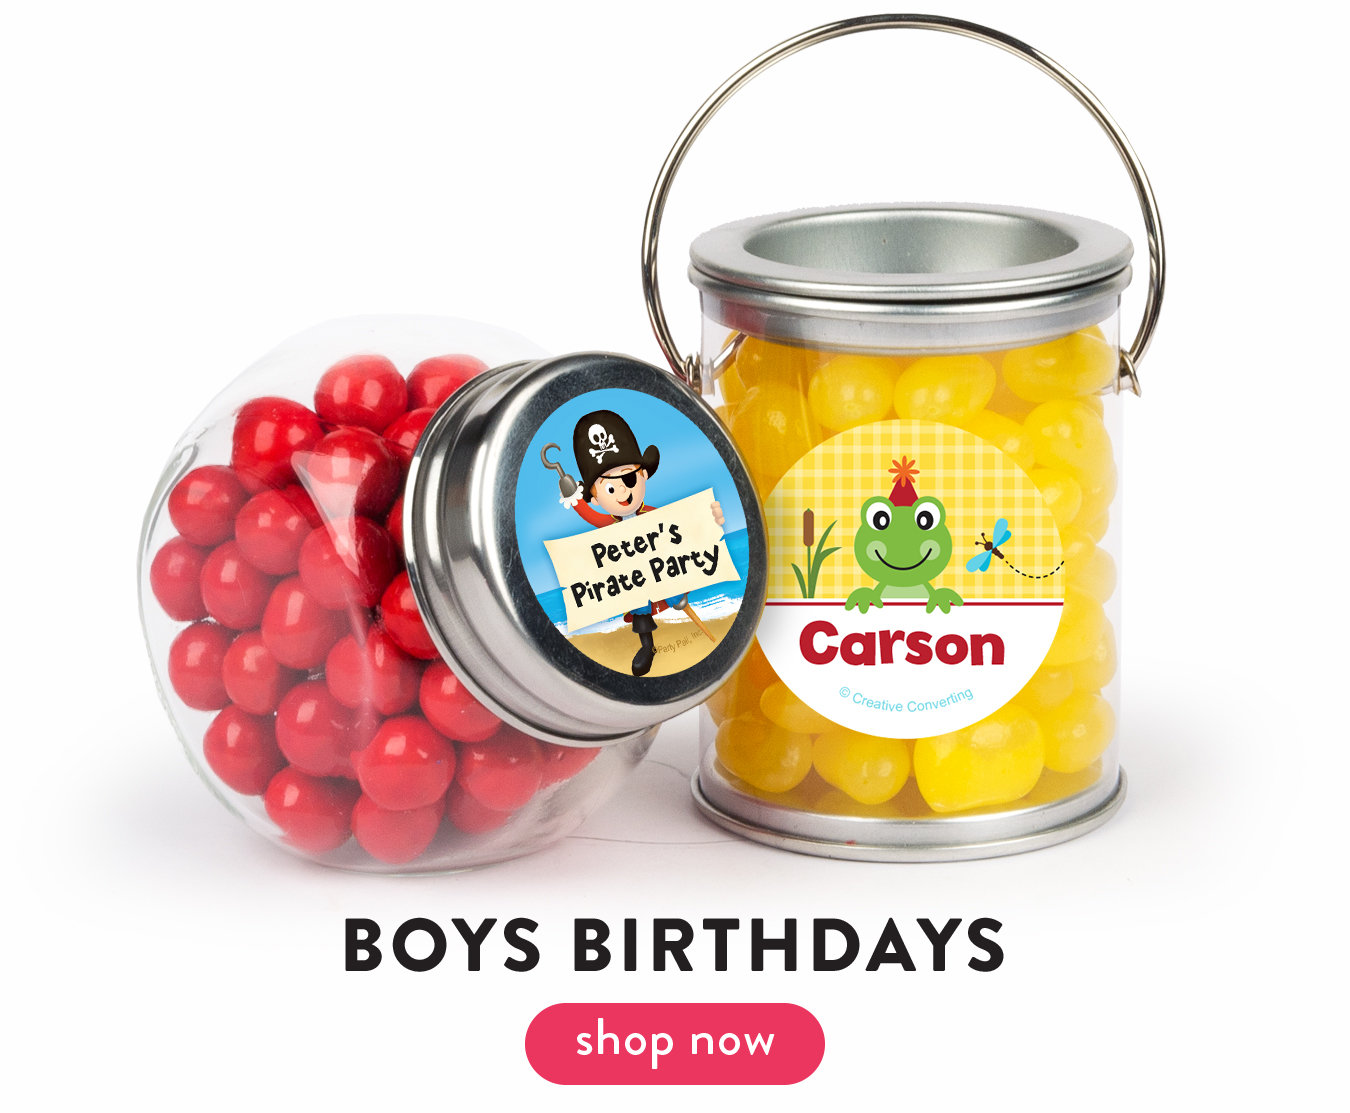 Boys Birthdays